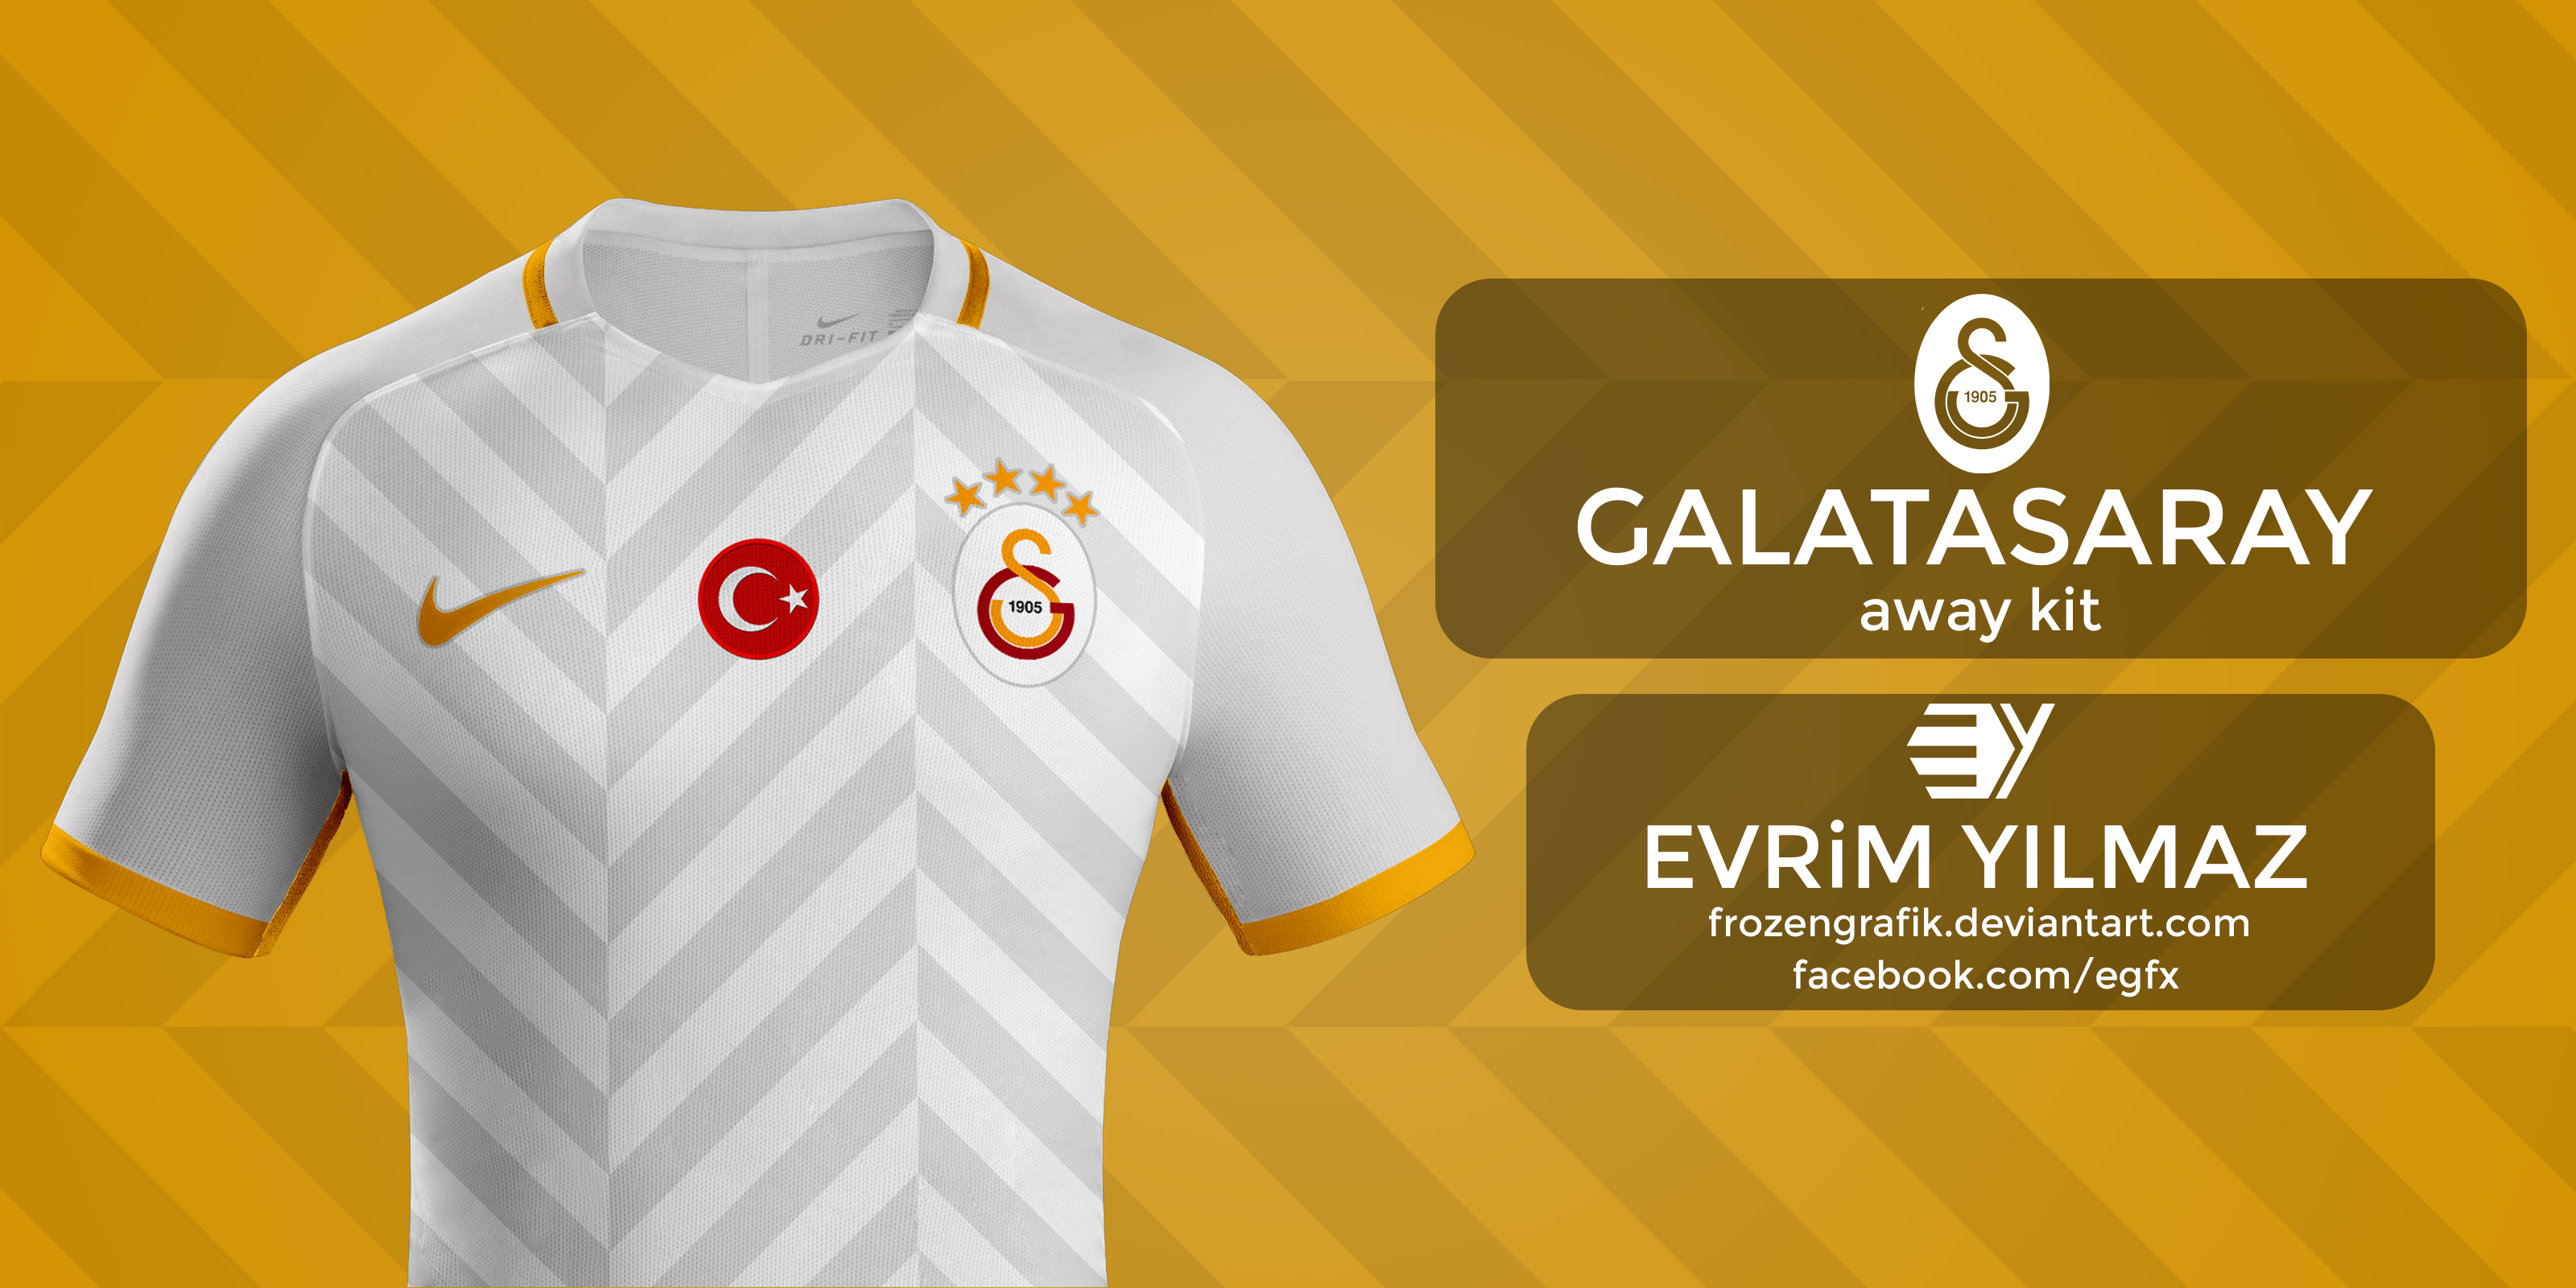 http://orig04.deviantart.net/d644/f/2016/169/d/7/galatasaray_away_kit_design_by_frozengrafik-da6r7sv.jpg